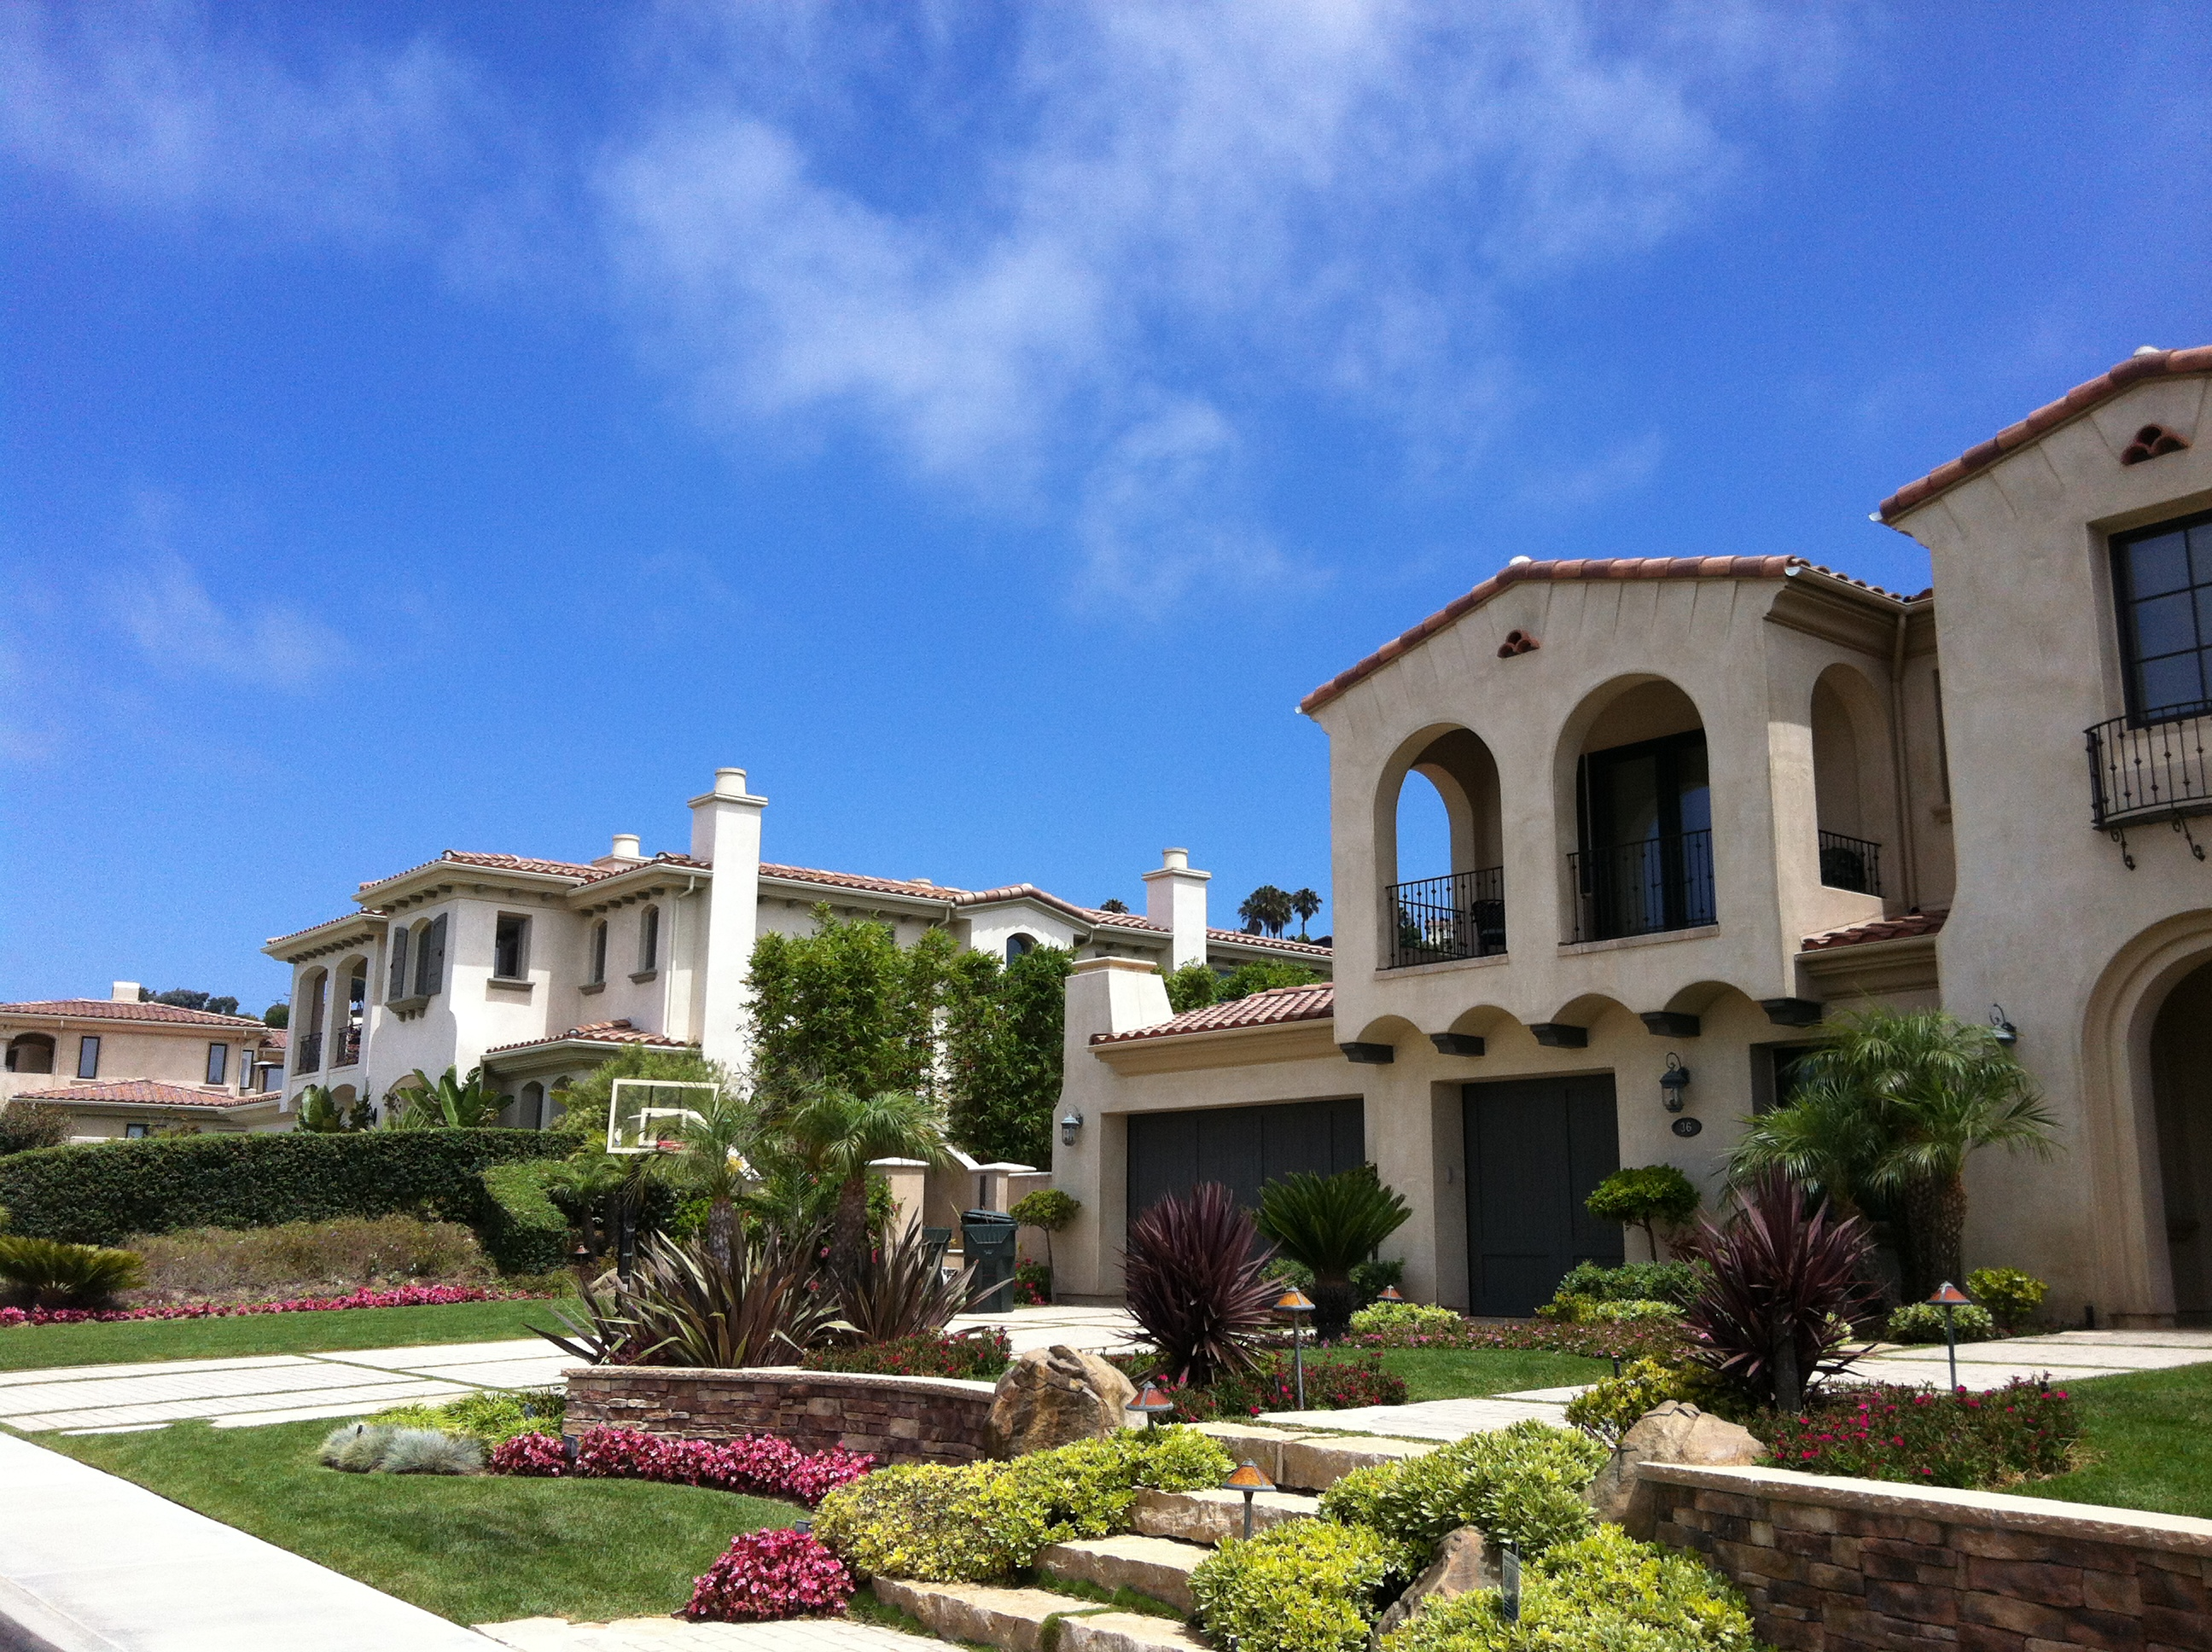 High end newer homes in Los Angeles